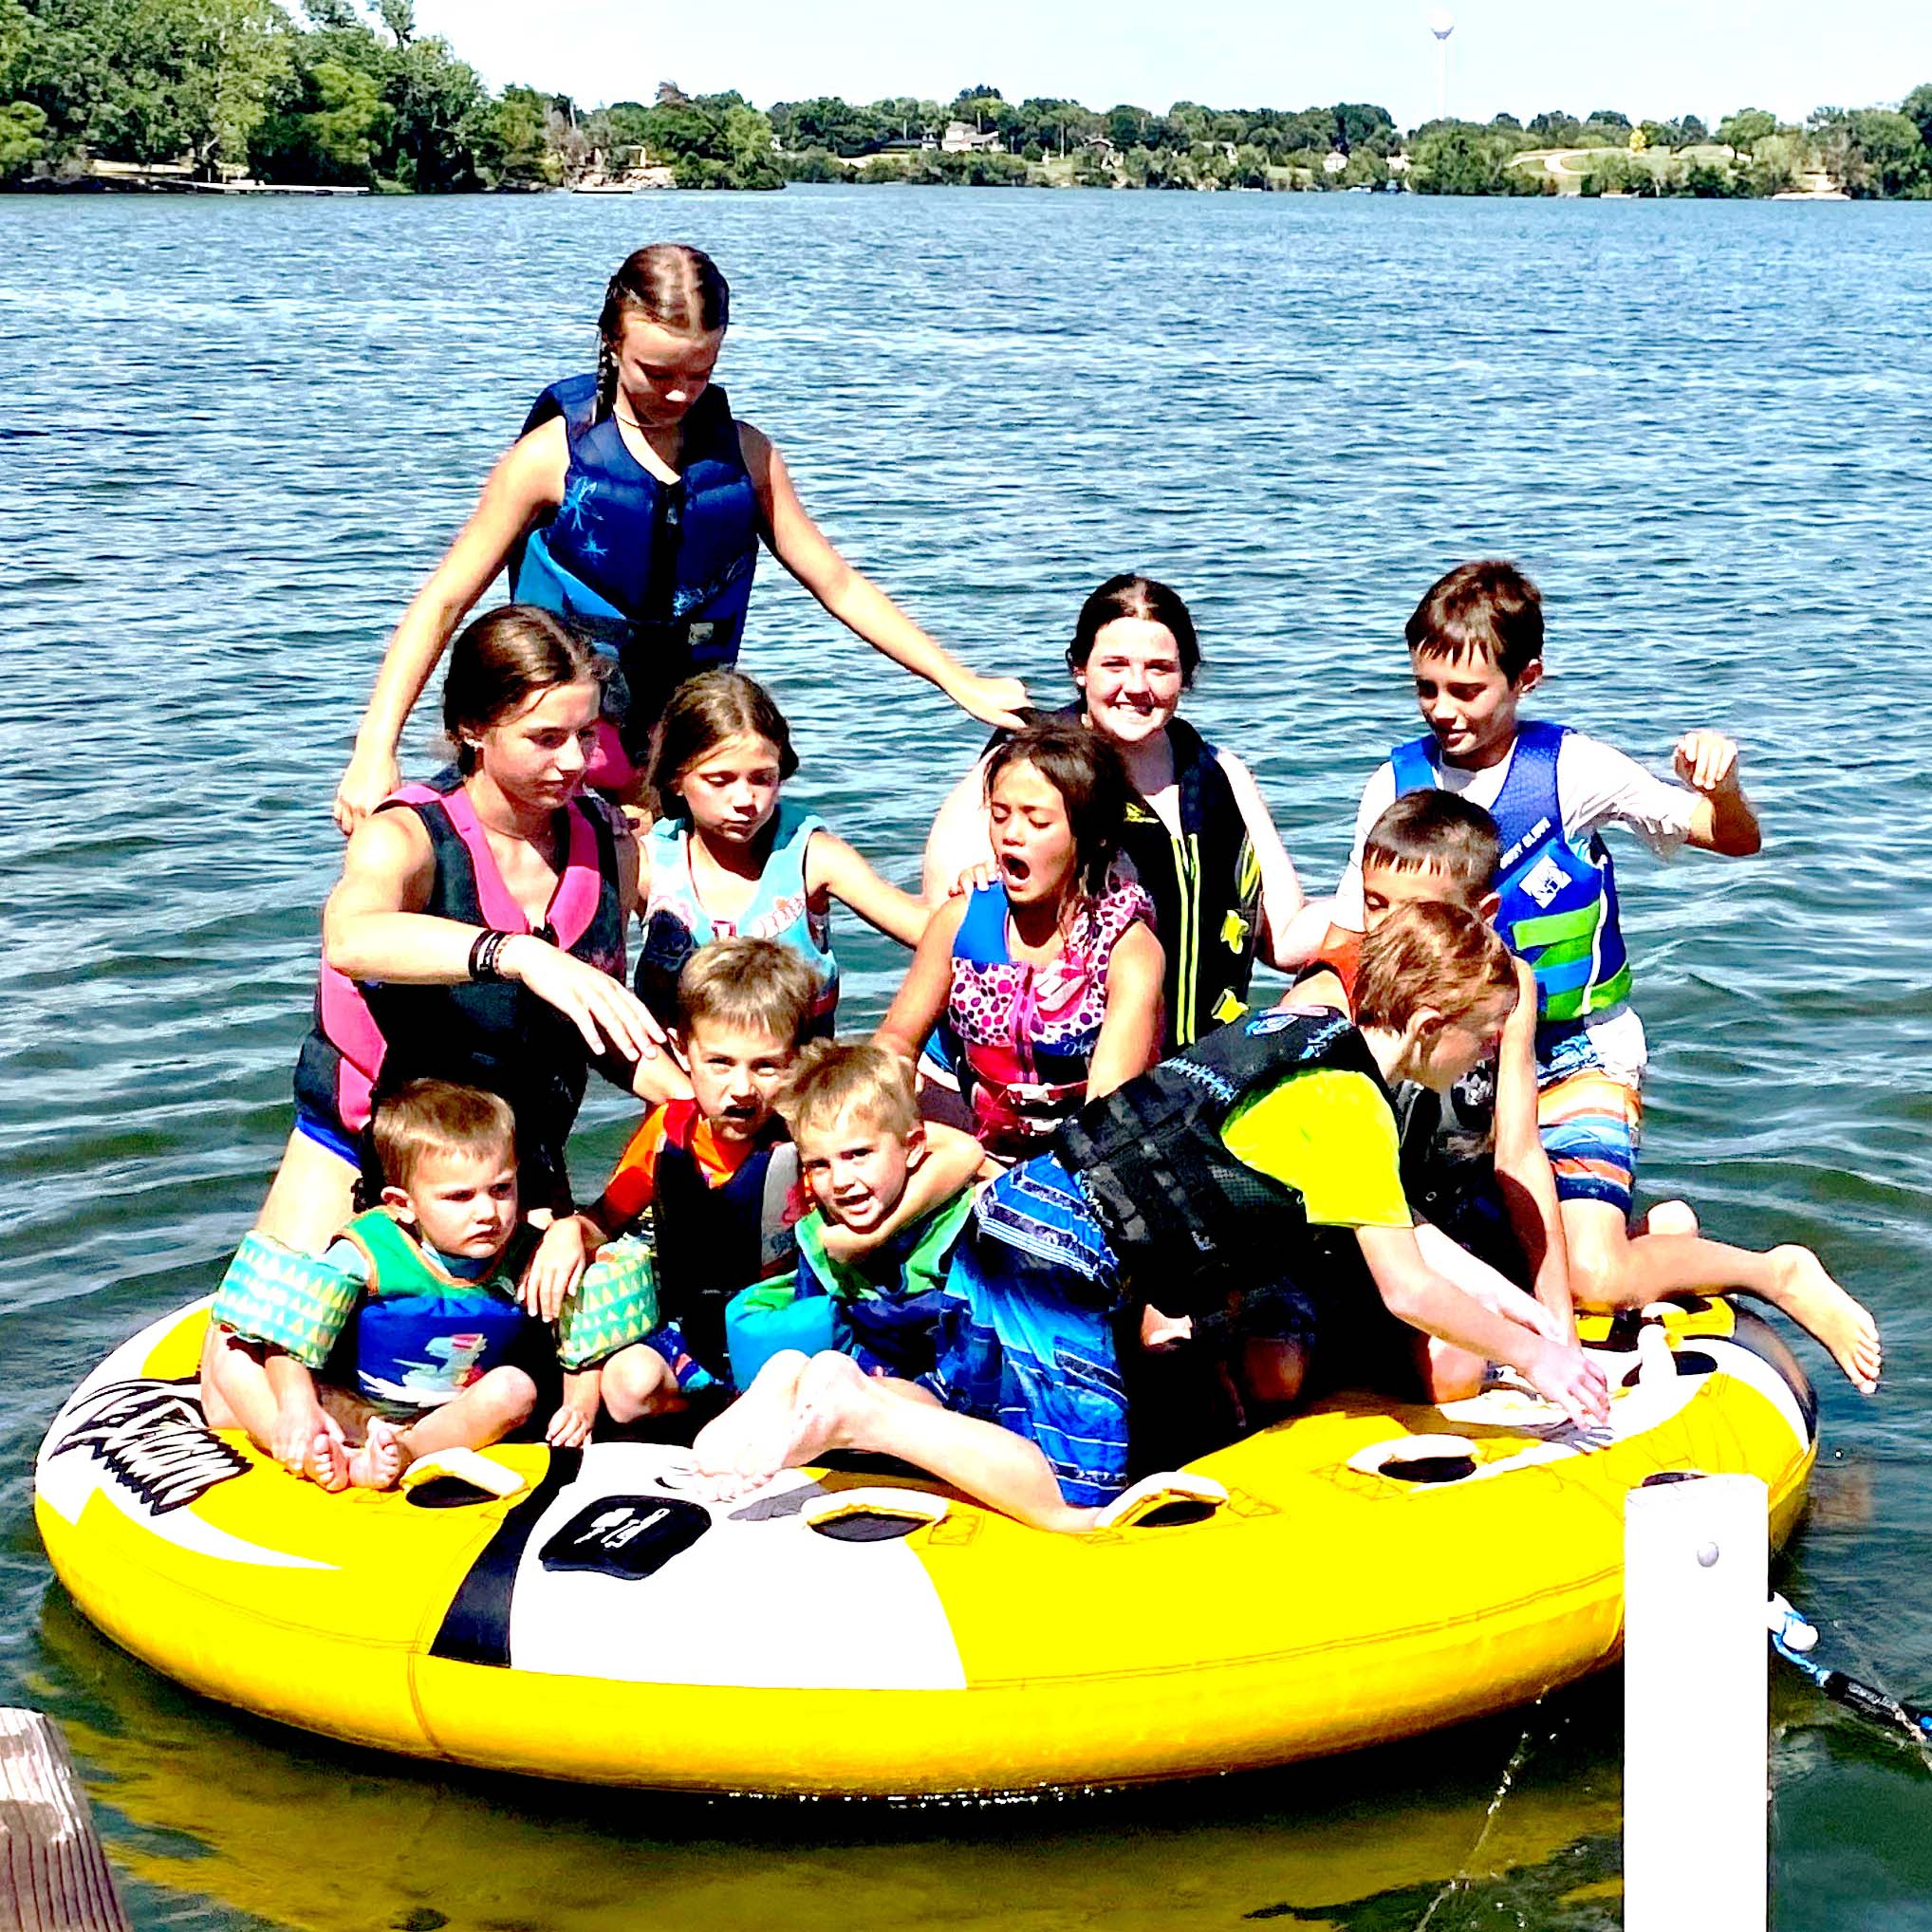 Hillsboro cross-country runner Emily Sechrist bolts to the lead Saturday in the Class 3A regional meet at Lake Afton, with teammate Karyn Leihy close behind. No one was close to Sechrist at the end of the race, as the senior phenom finished almost 30 seconds ahead of the second-place runner. Sechrist and Leihy both qualified for the state meet Friday at Rim Rock Farm near Lawrence, the course Sechrist won her first state championship on.